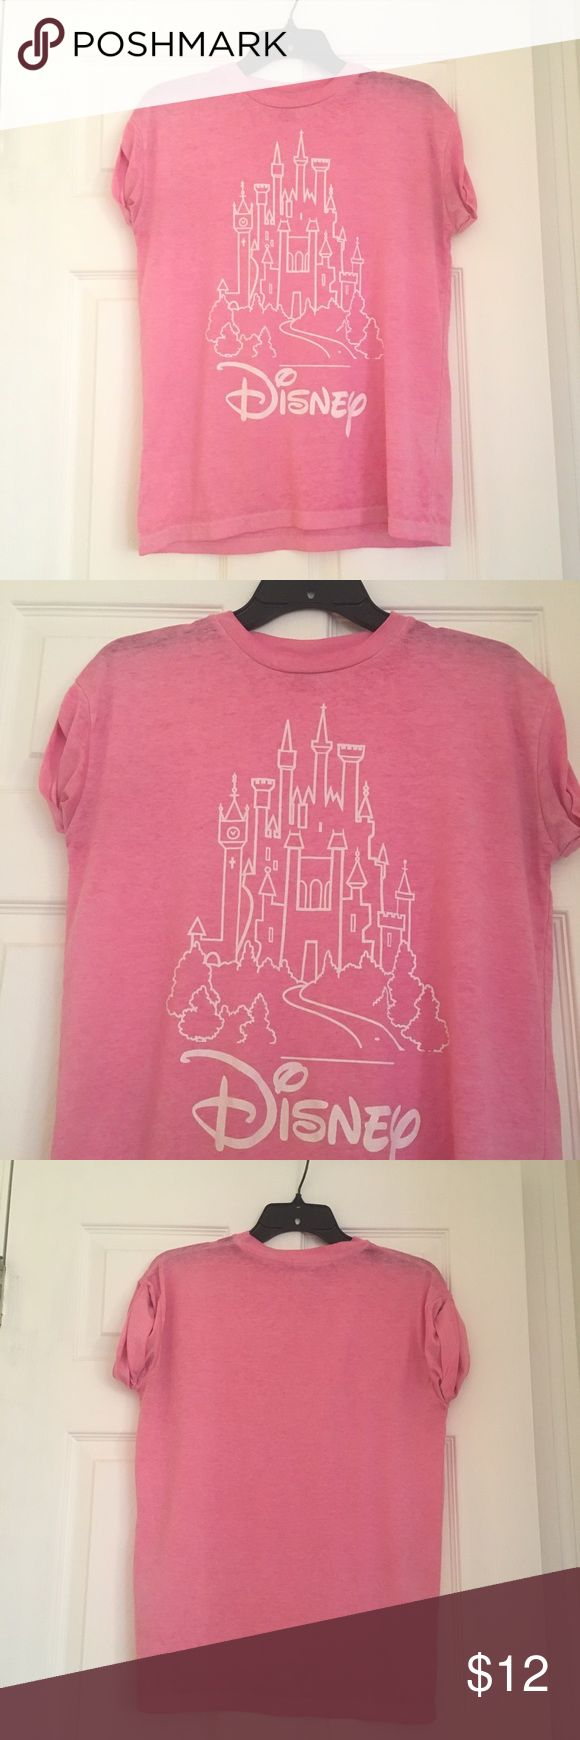 Pink disney tshirt Pink disney tshirt with rolled sleeves from Primark. In good condition. US size 4, UK size 8. Slightly oversized Disney Tops Tees - Short Sleeve